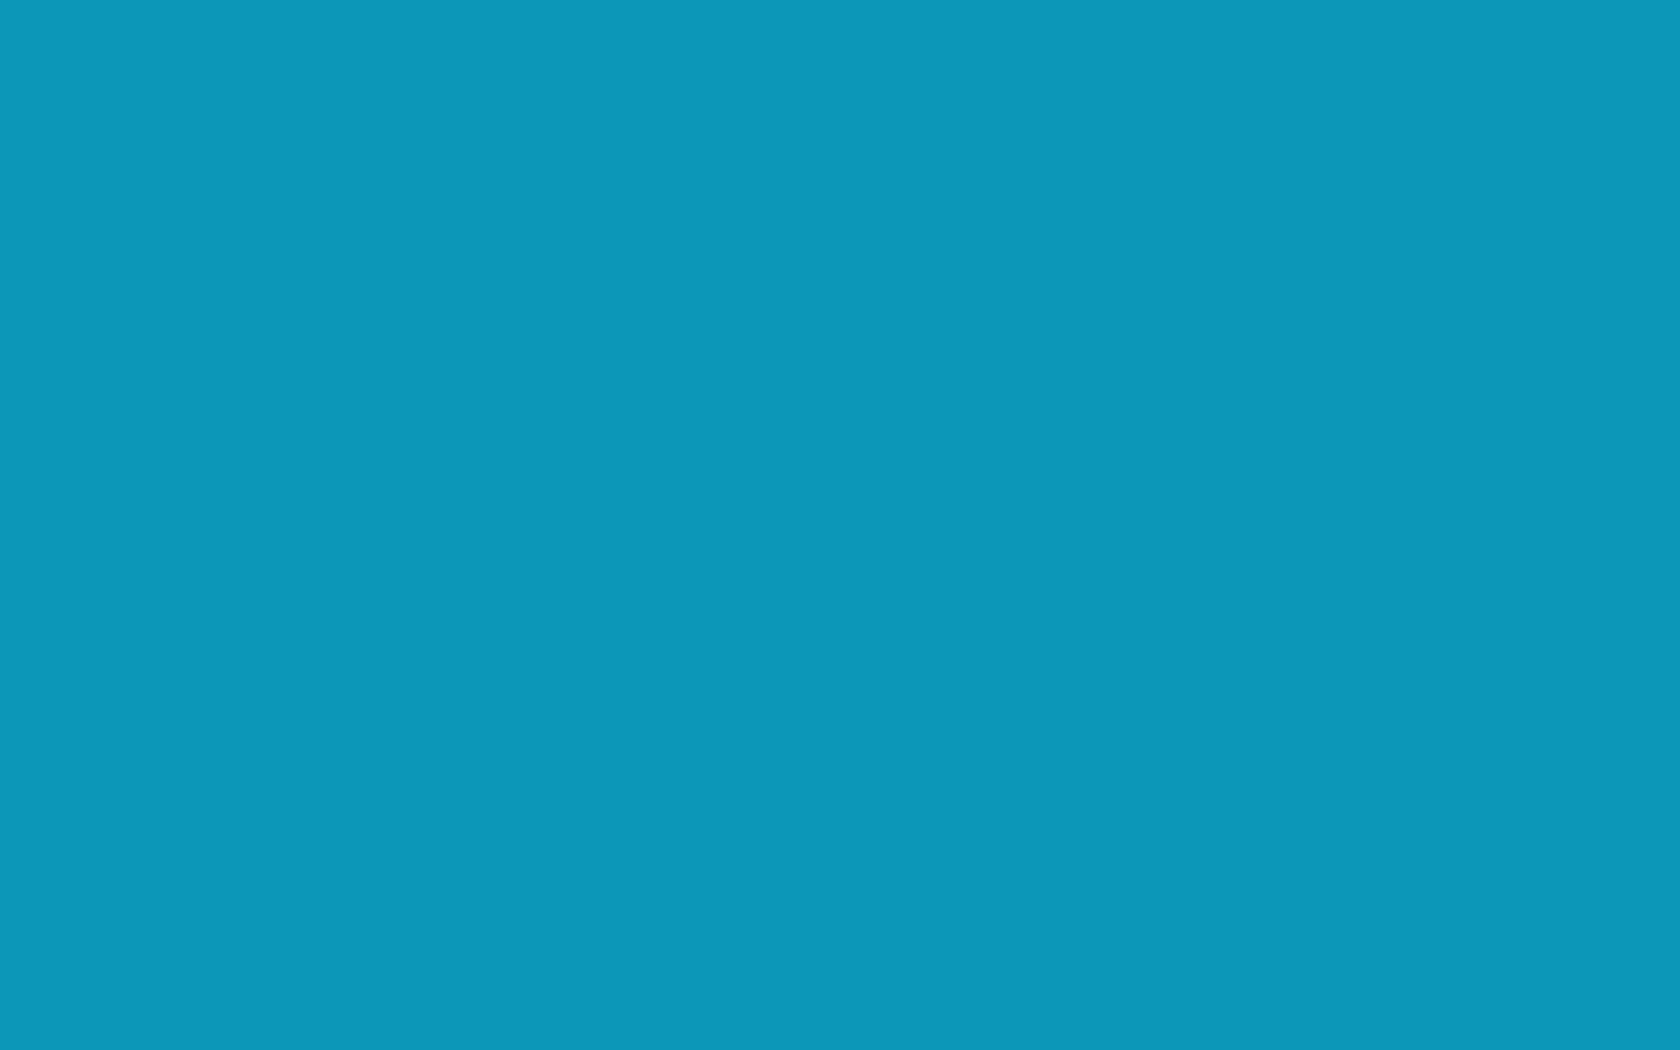 1680x1050 blue green solid color background .